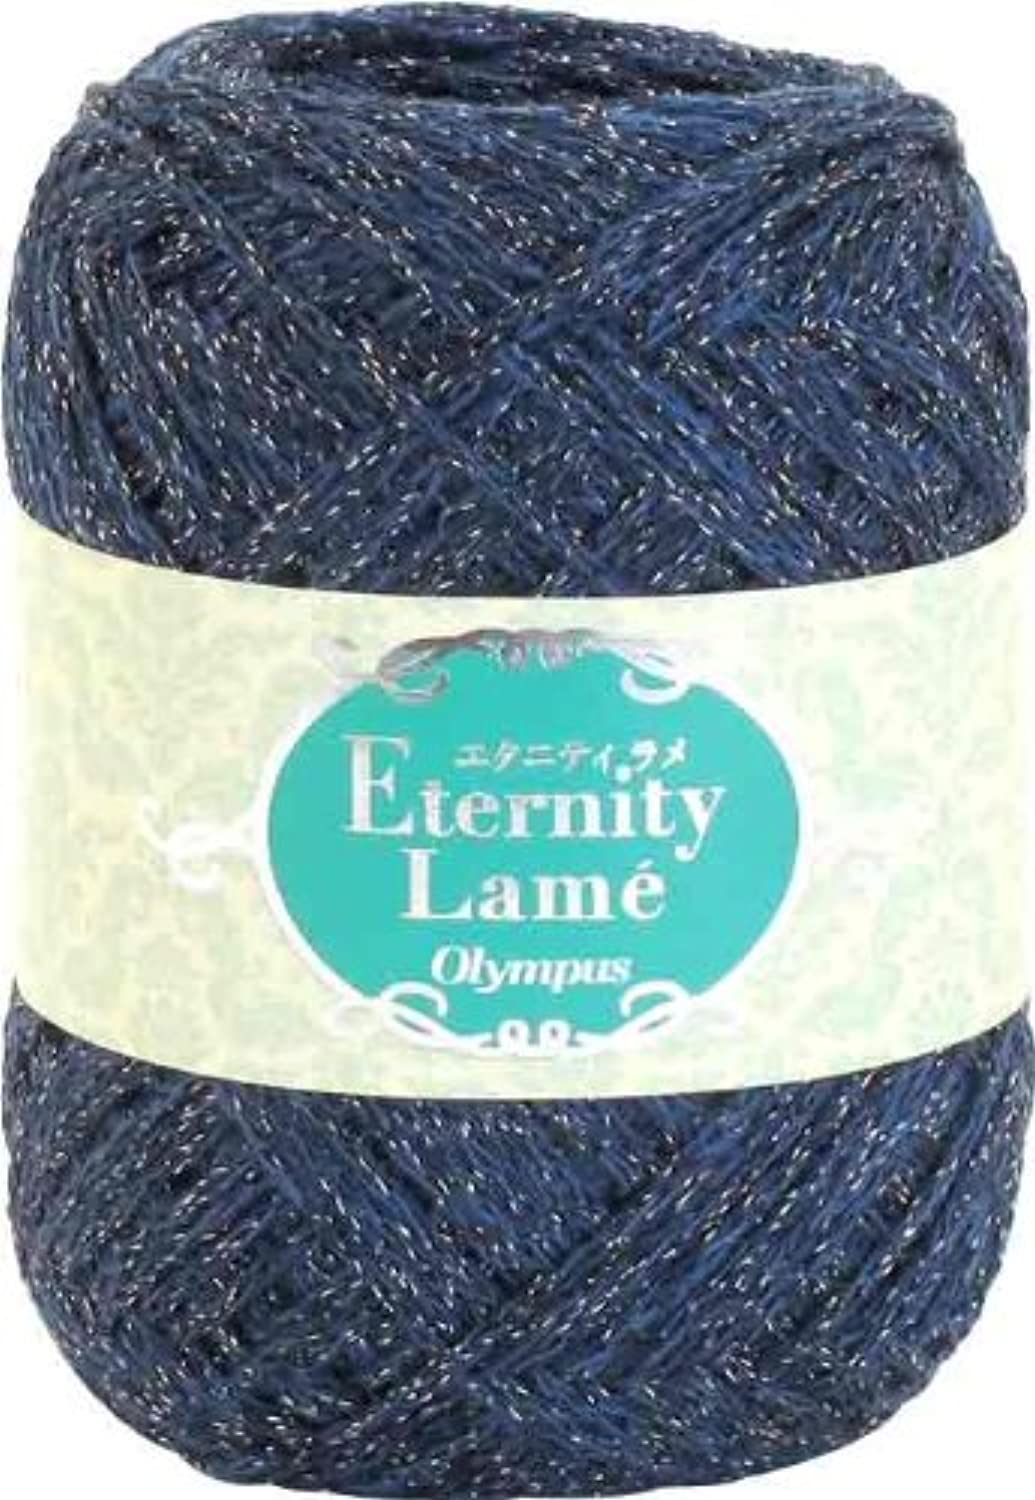 Orimupasu made Eternity lame 30g about 120m col.7 5 ball set (japan import)